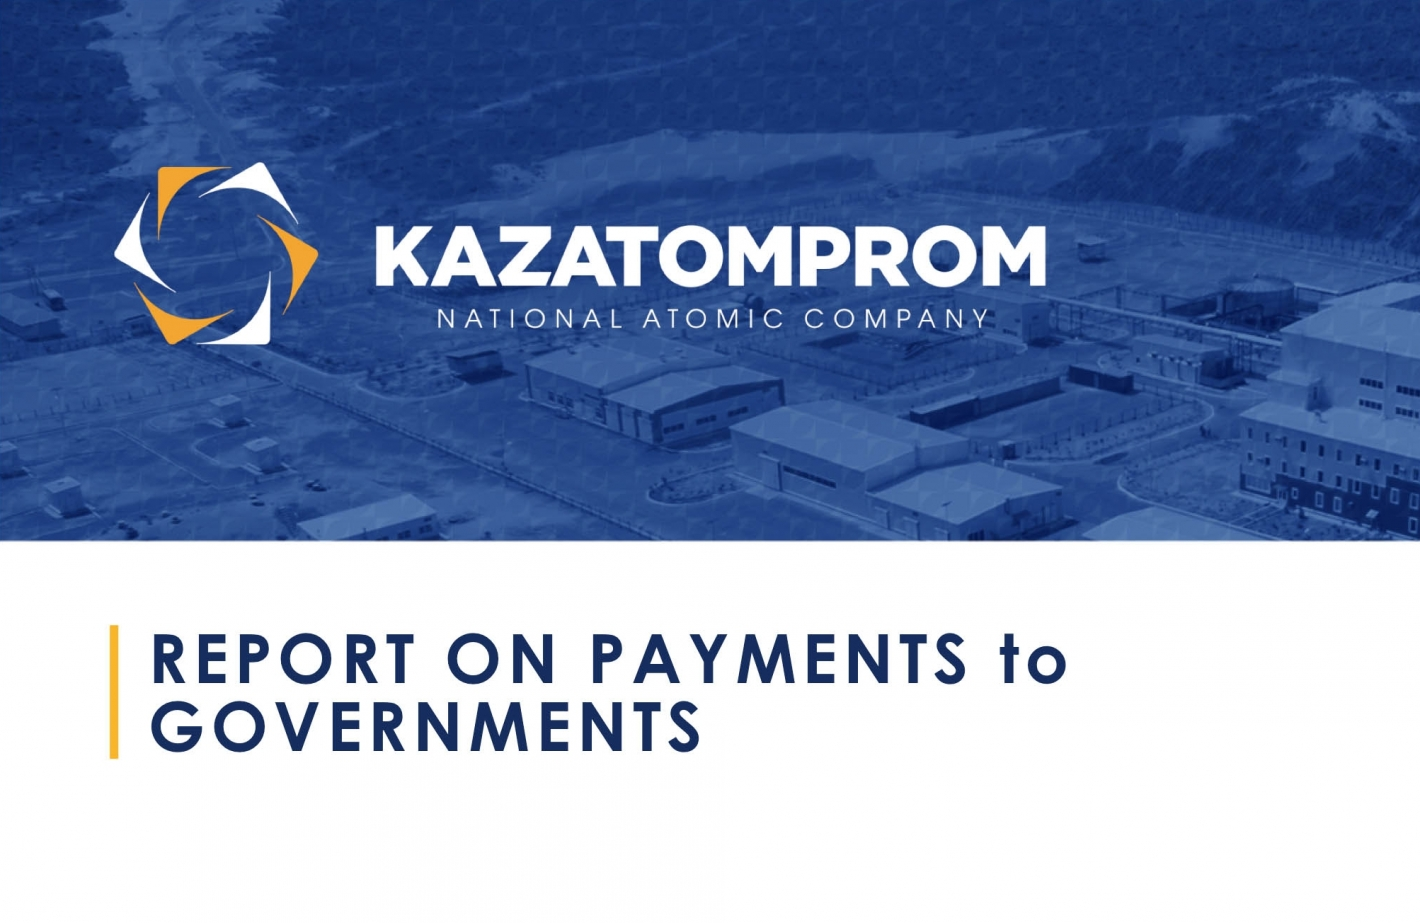 Report on Payments to Governments